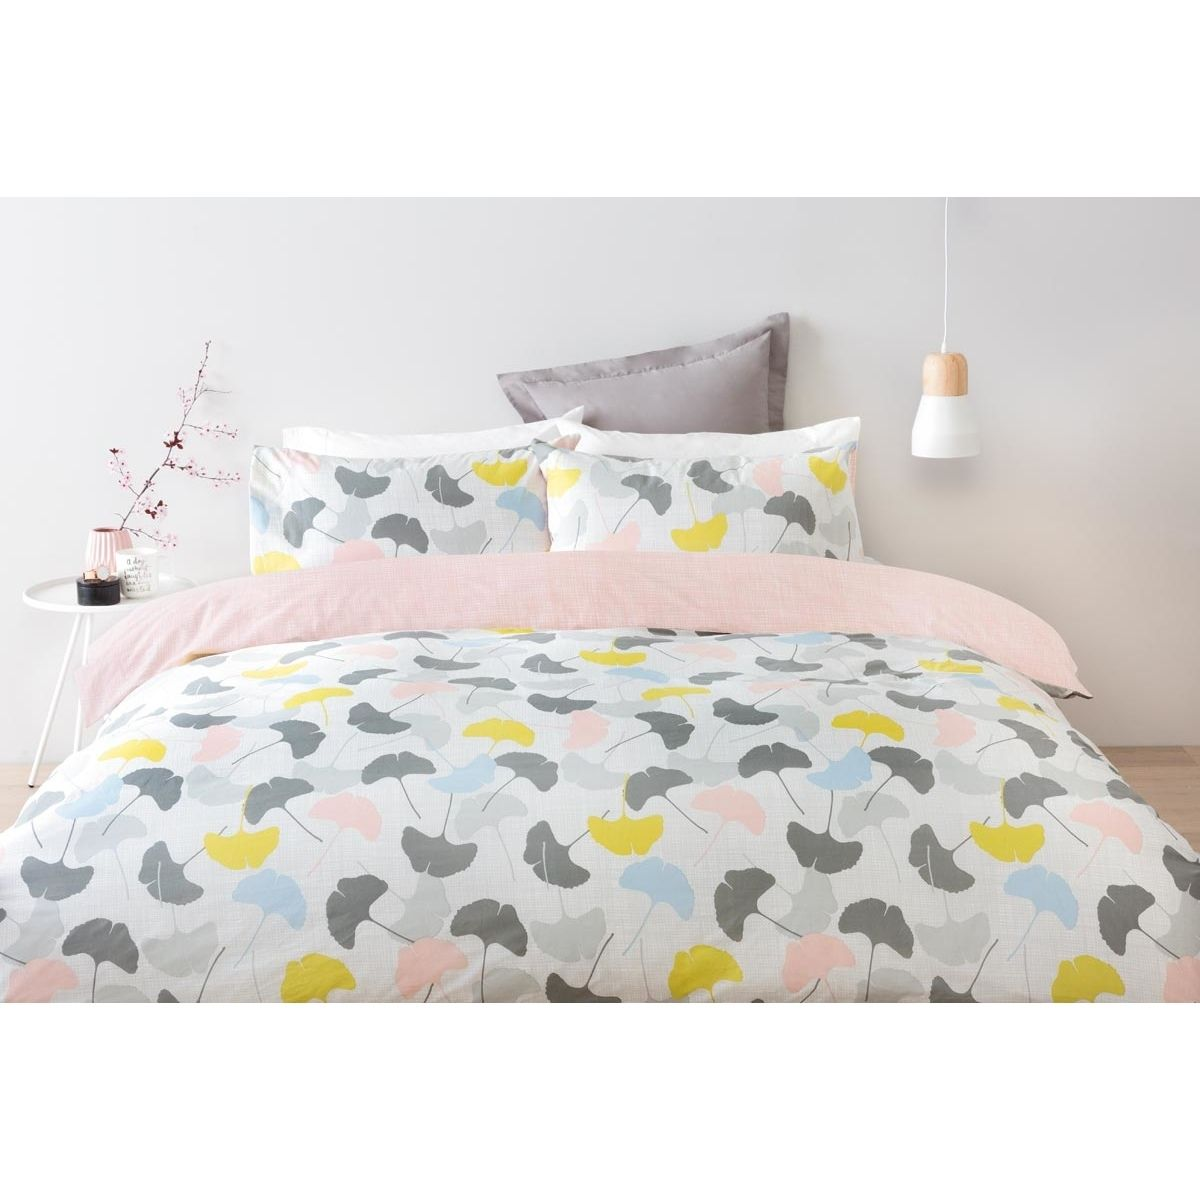 Ginko Quilt Cover Set - Double Bed | Kmart | Property styling ... : quilt double bed - Adamdwight.com